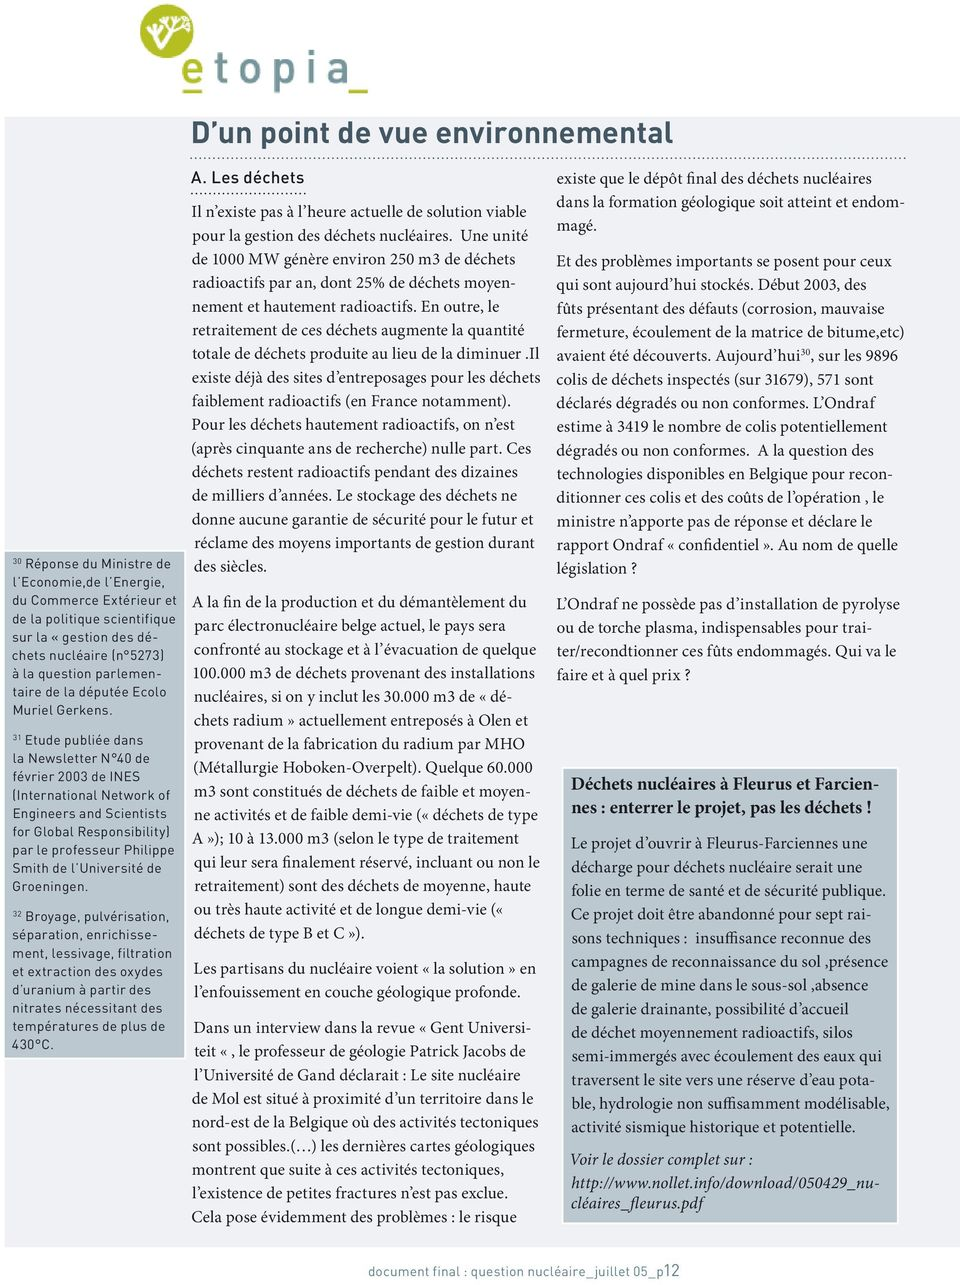 31 Etude publiée dans la Newsletter N 40 de février 2003 de INES (International Network of Engineers and Scientists for Global Responsibility) par le professeur Philippe Smith de l Université de